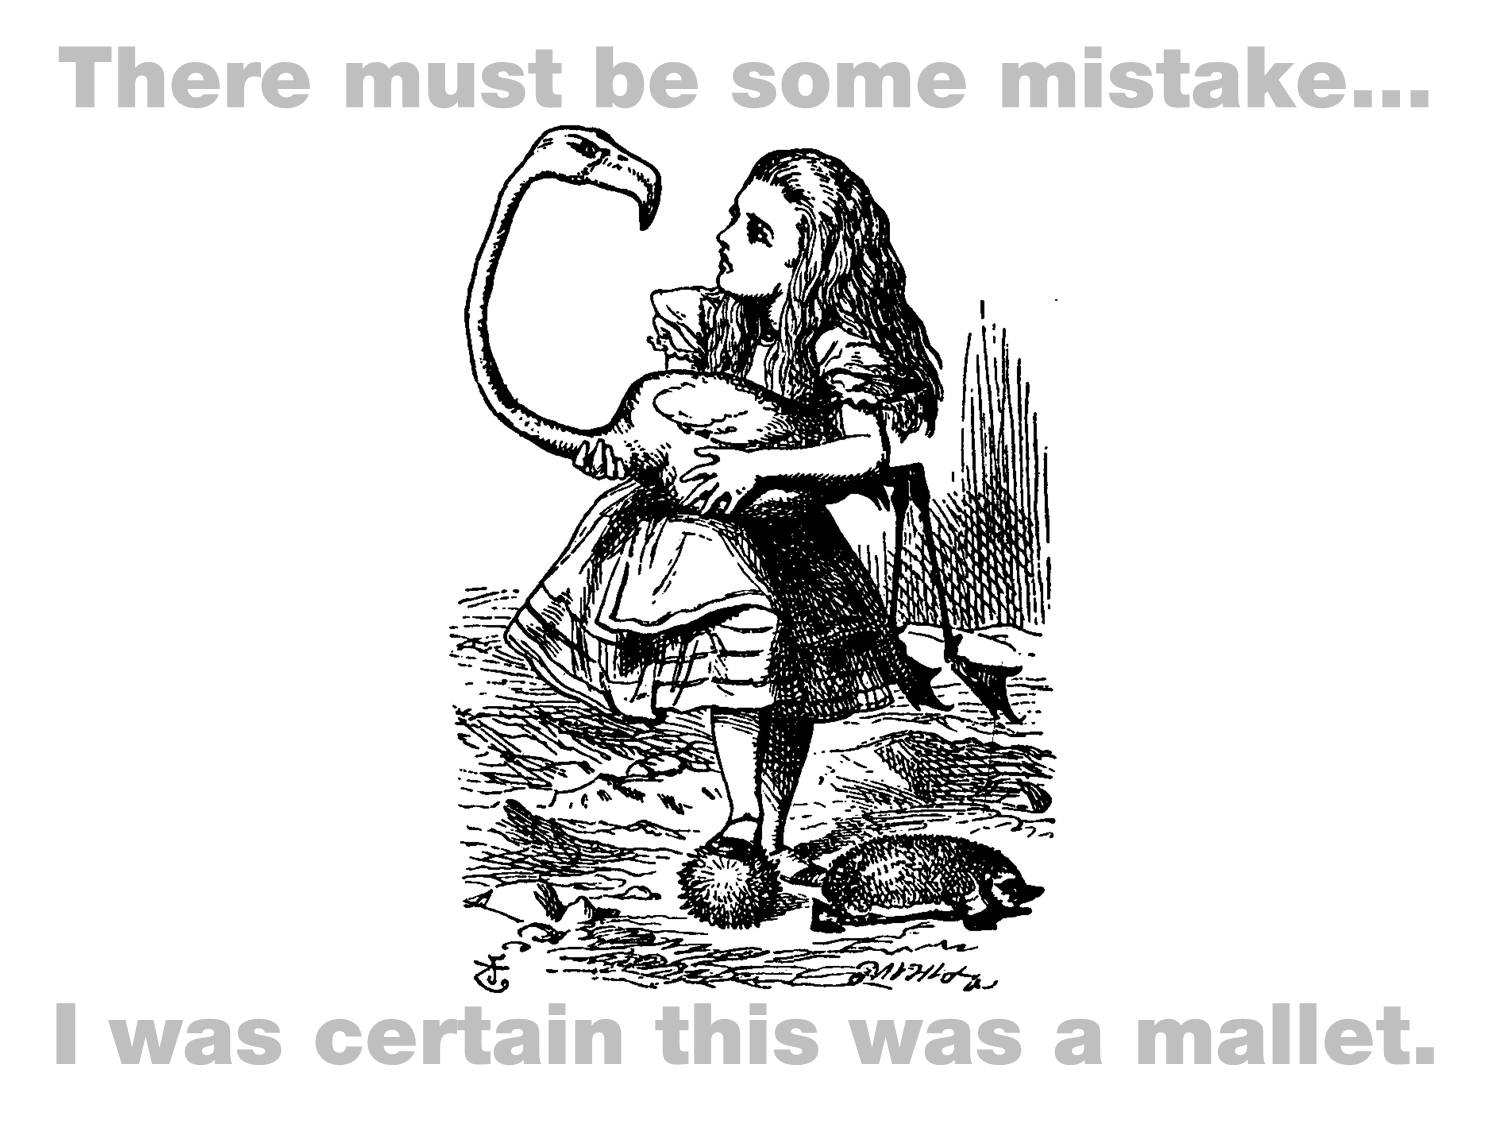 Alice in Wonderland scene with Alice holding a Flamingo croquet mallet